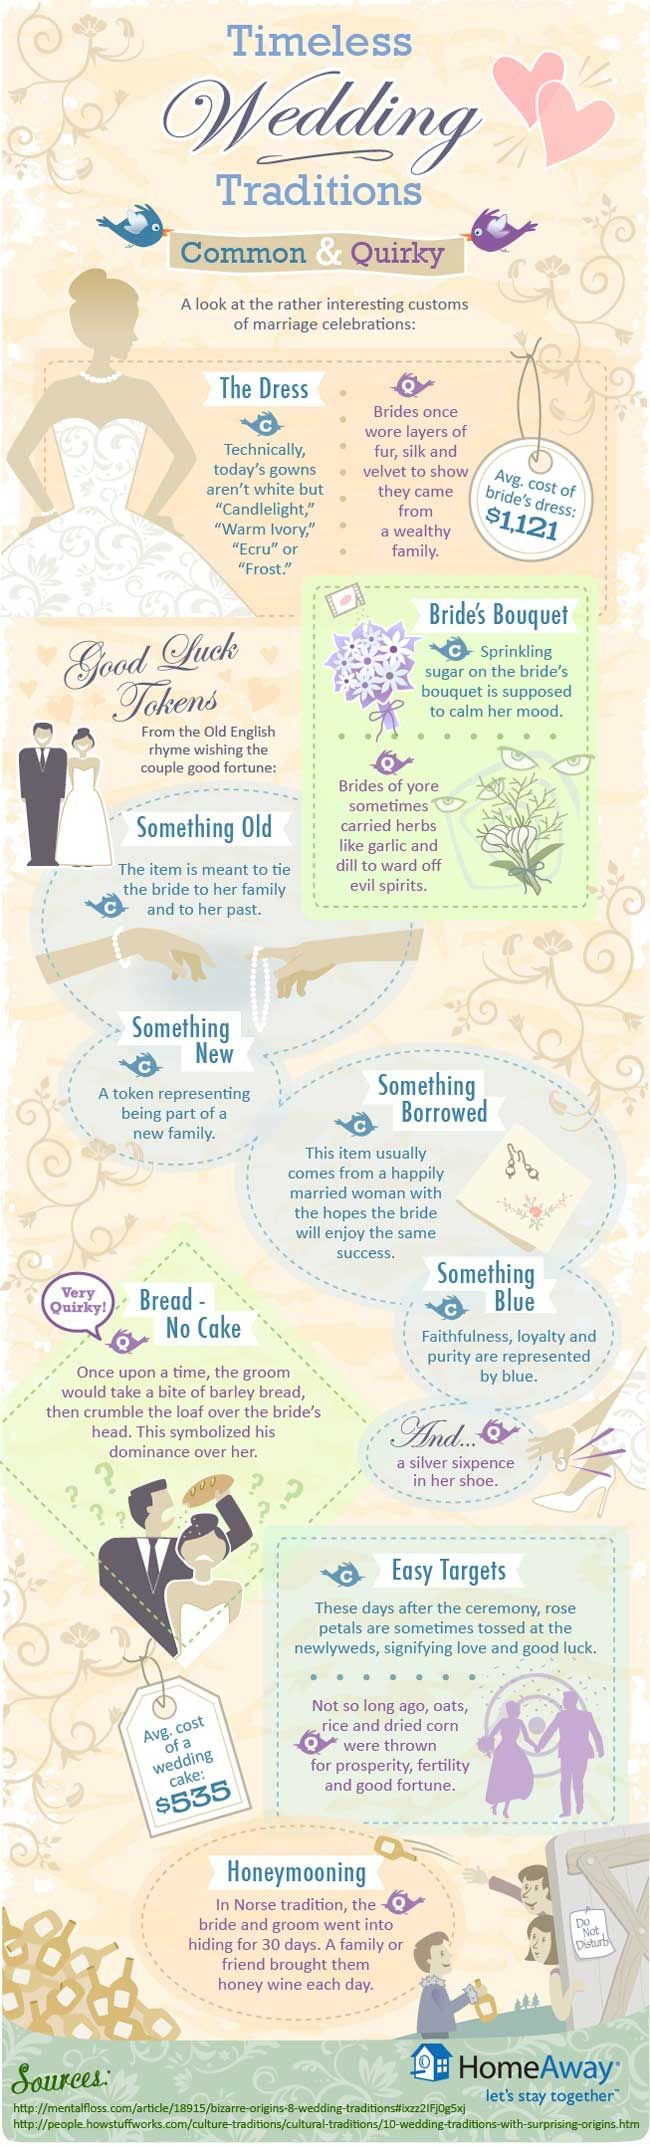 Common and Quirky Wedding Traditions [infographic] Something old, something new, something borrowed, something blue and Silver Sixpence in her shoe!